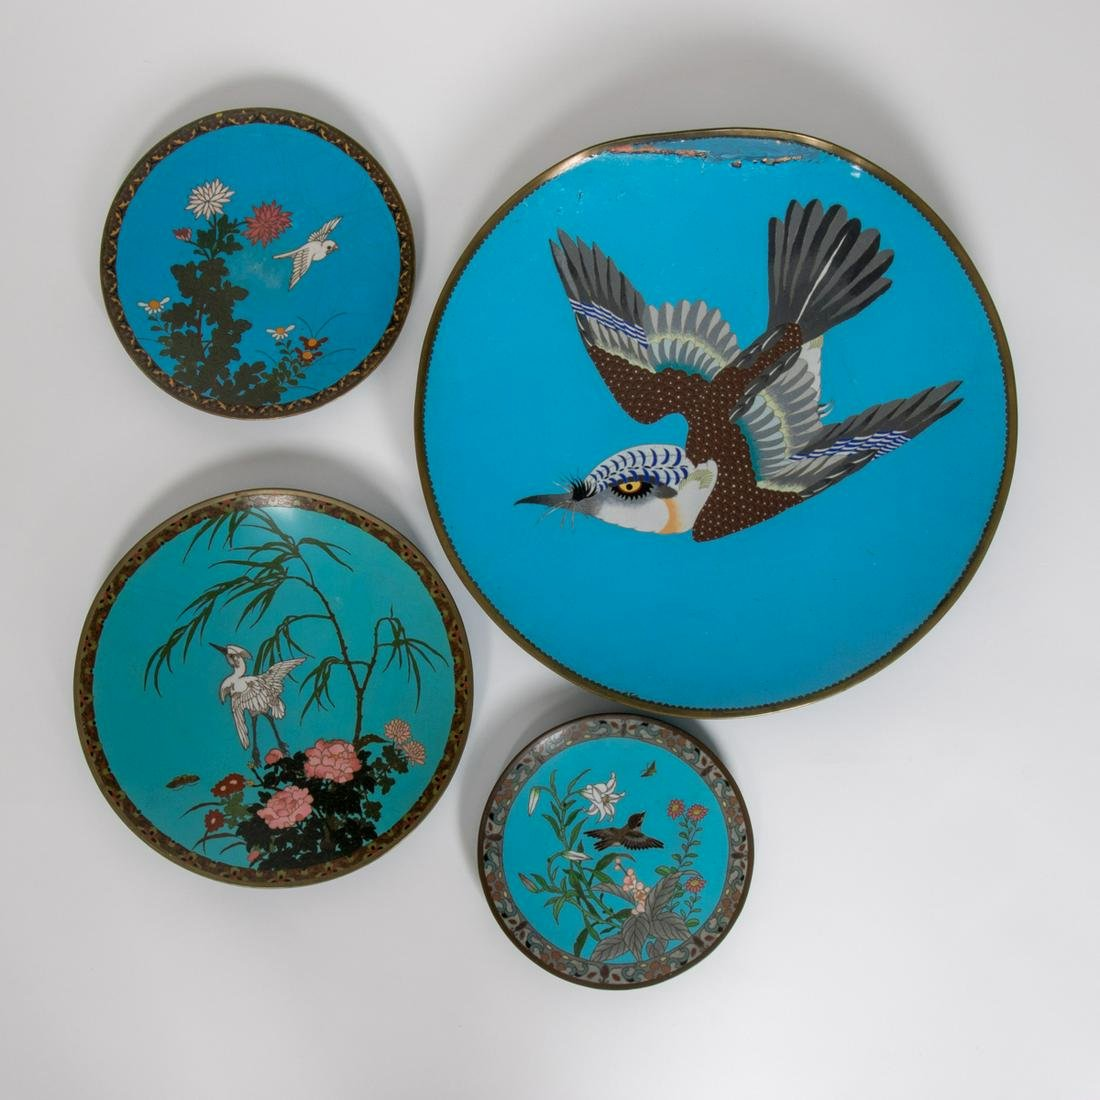 A Group of Four Chinese Cloisonné Chargers and Plates,